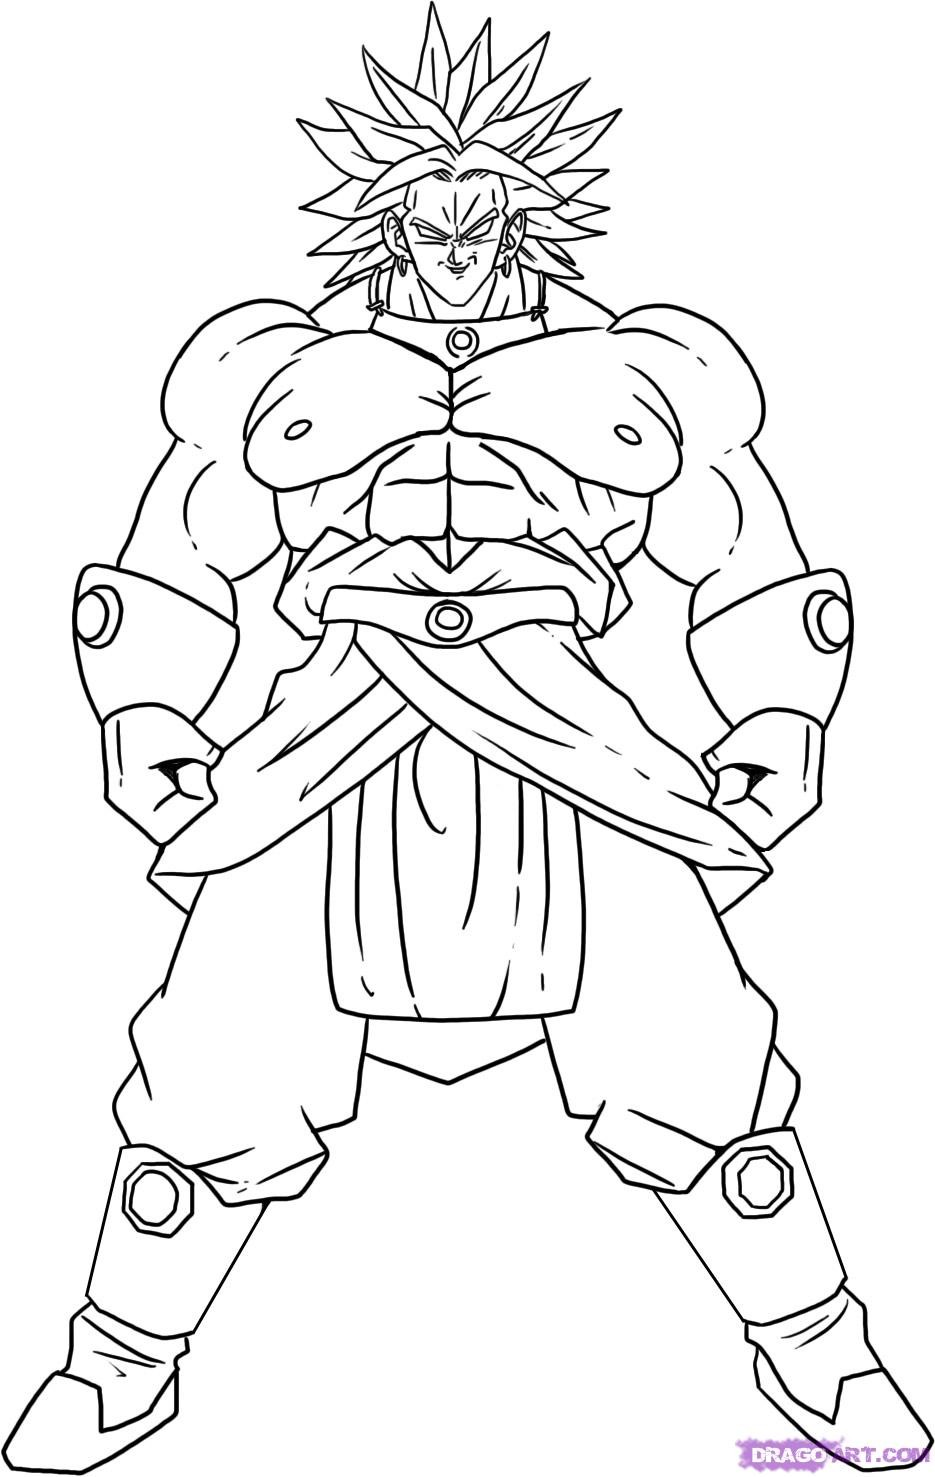 Dragon Ball Z Coloring Pages Printable Timykids